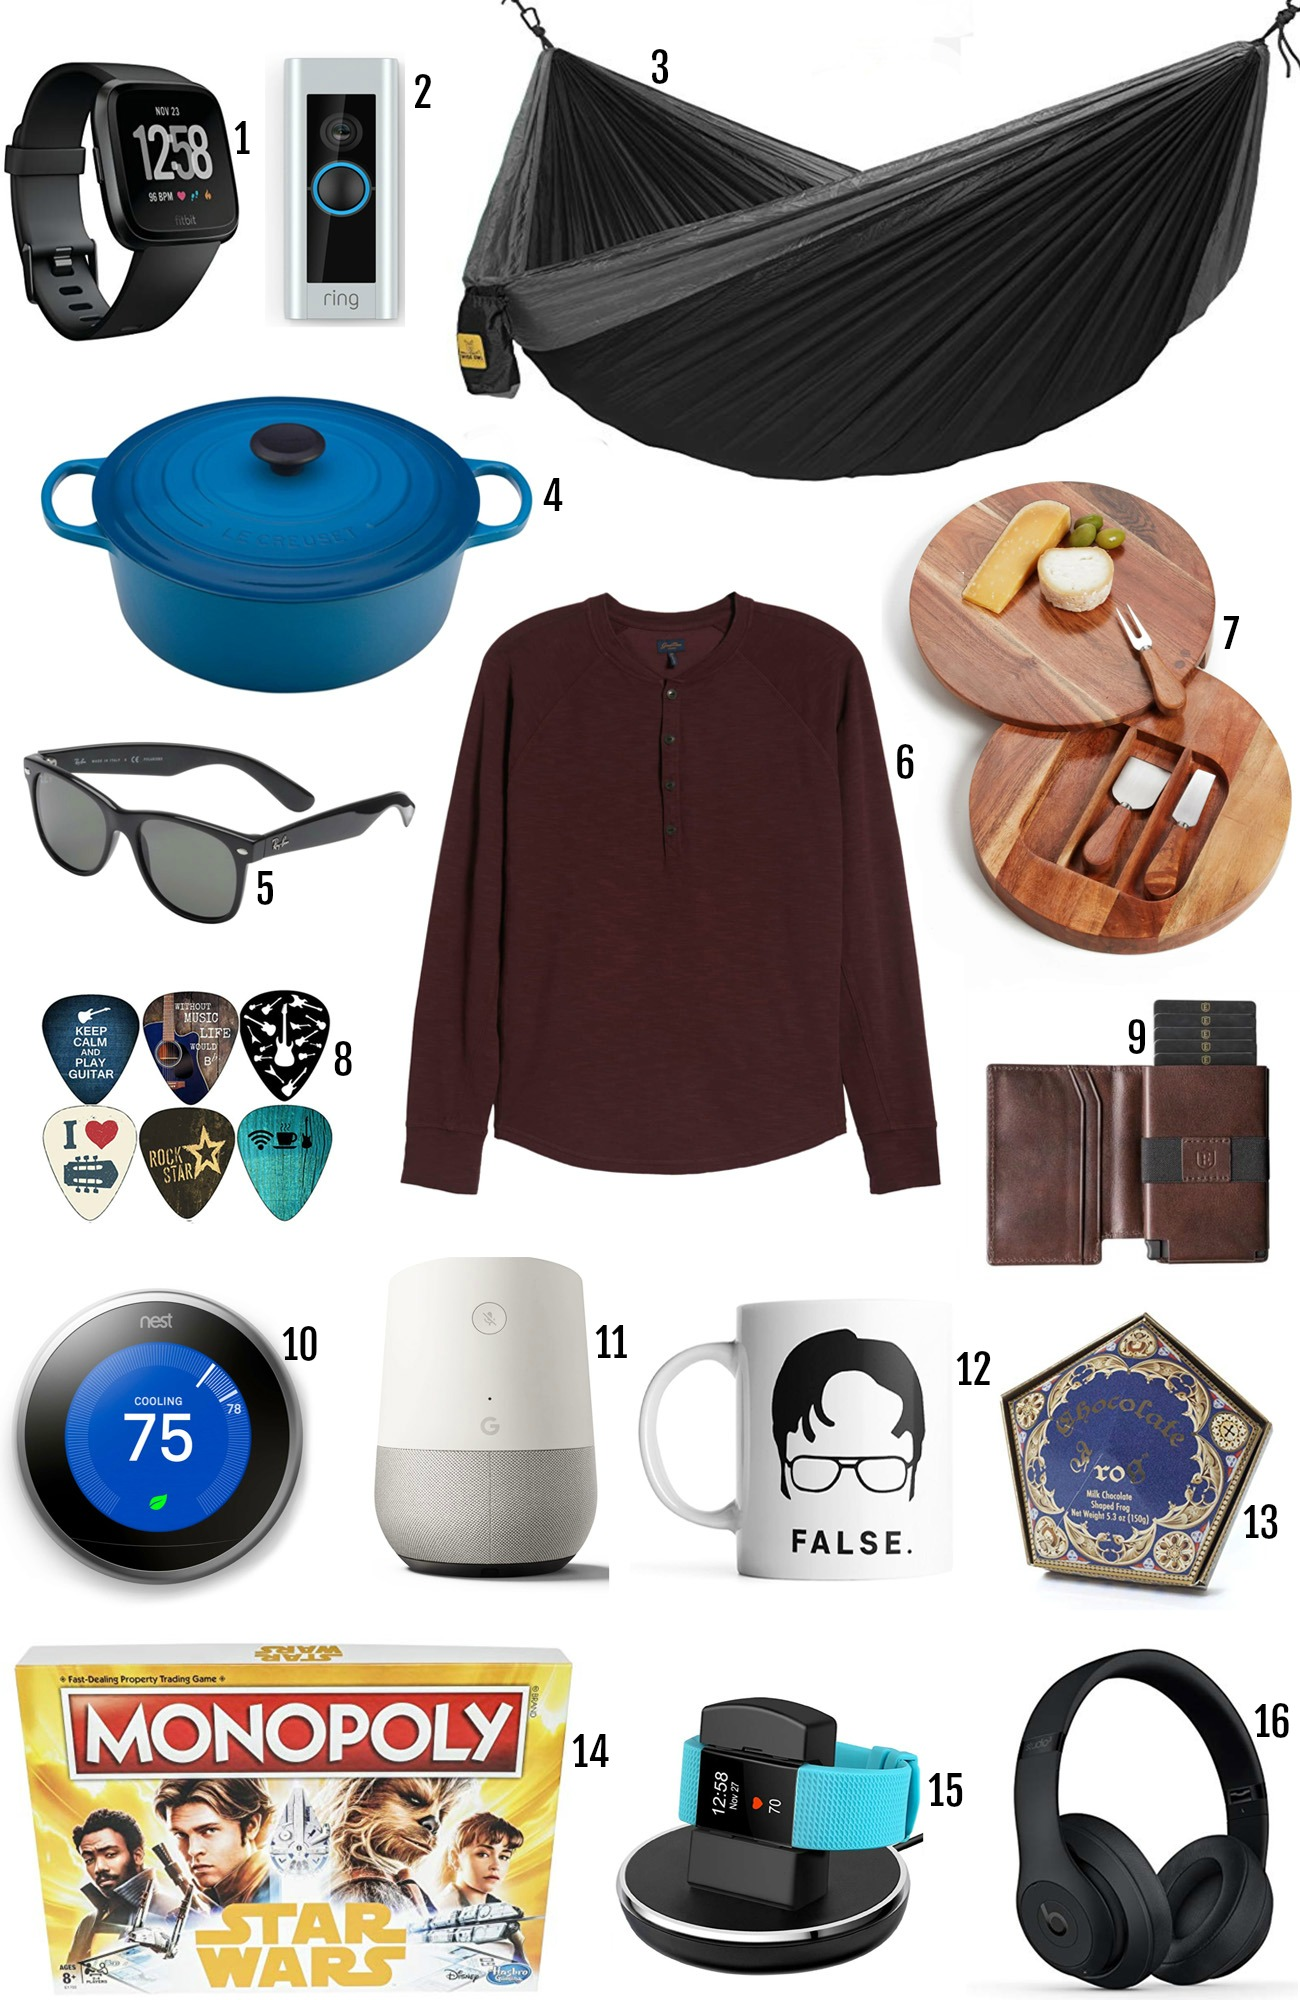 Mash Elle beauty and lifestyle blogger   Gifts for men   Men's Christmas gift ideas   presents for men   Rayban's   hammock